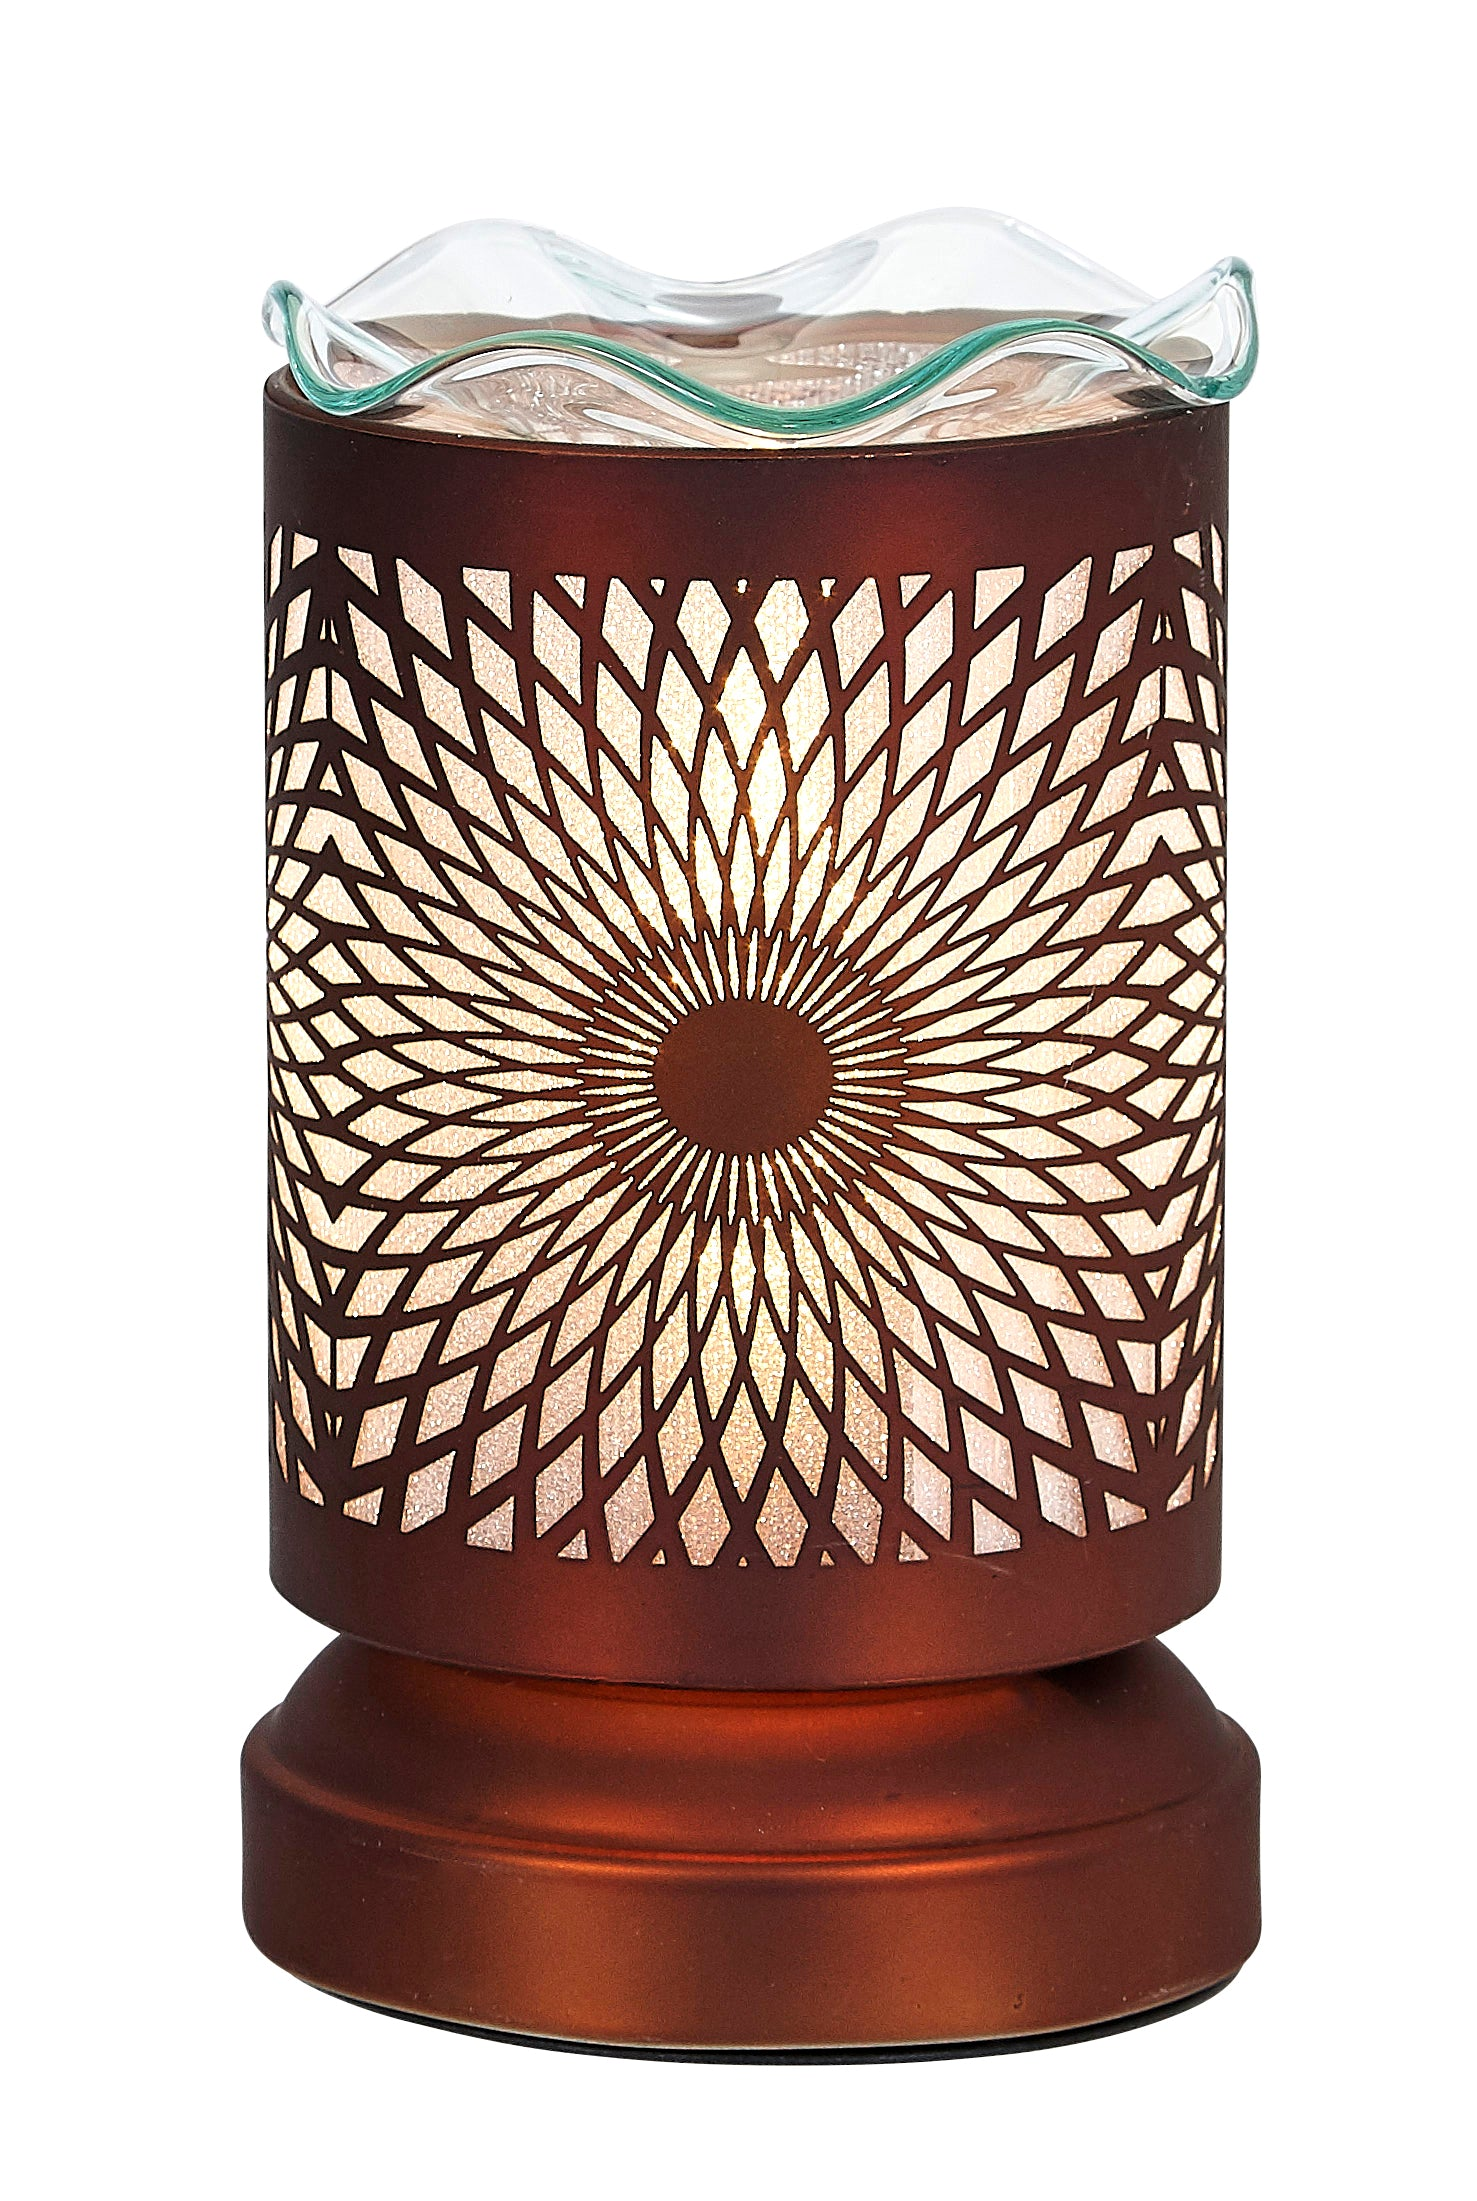 Fragrance Oils & Wax Ceramic Burner Warmer Design